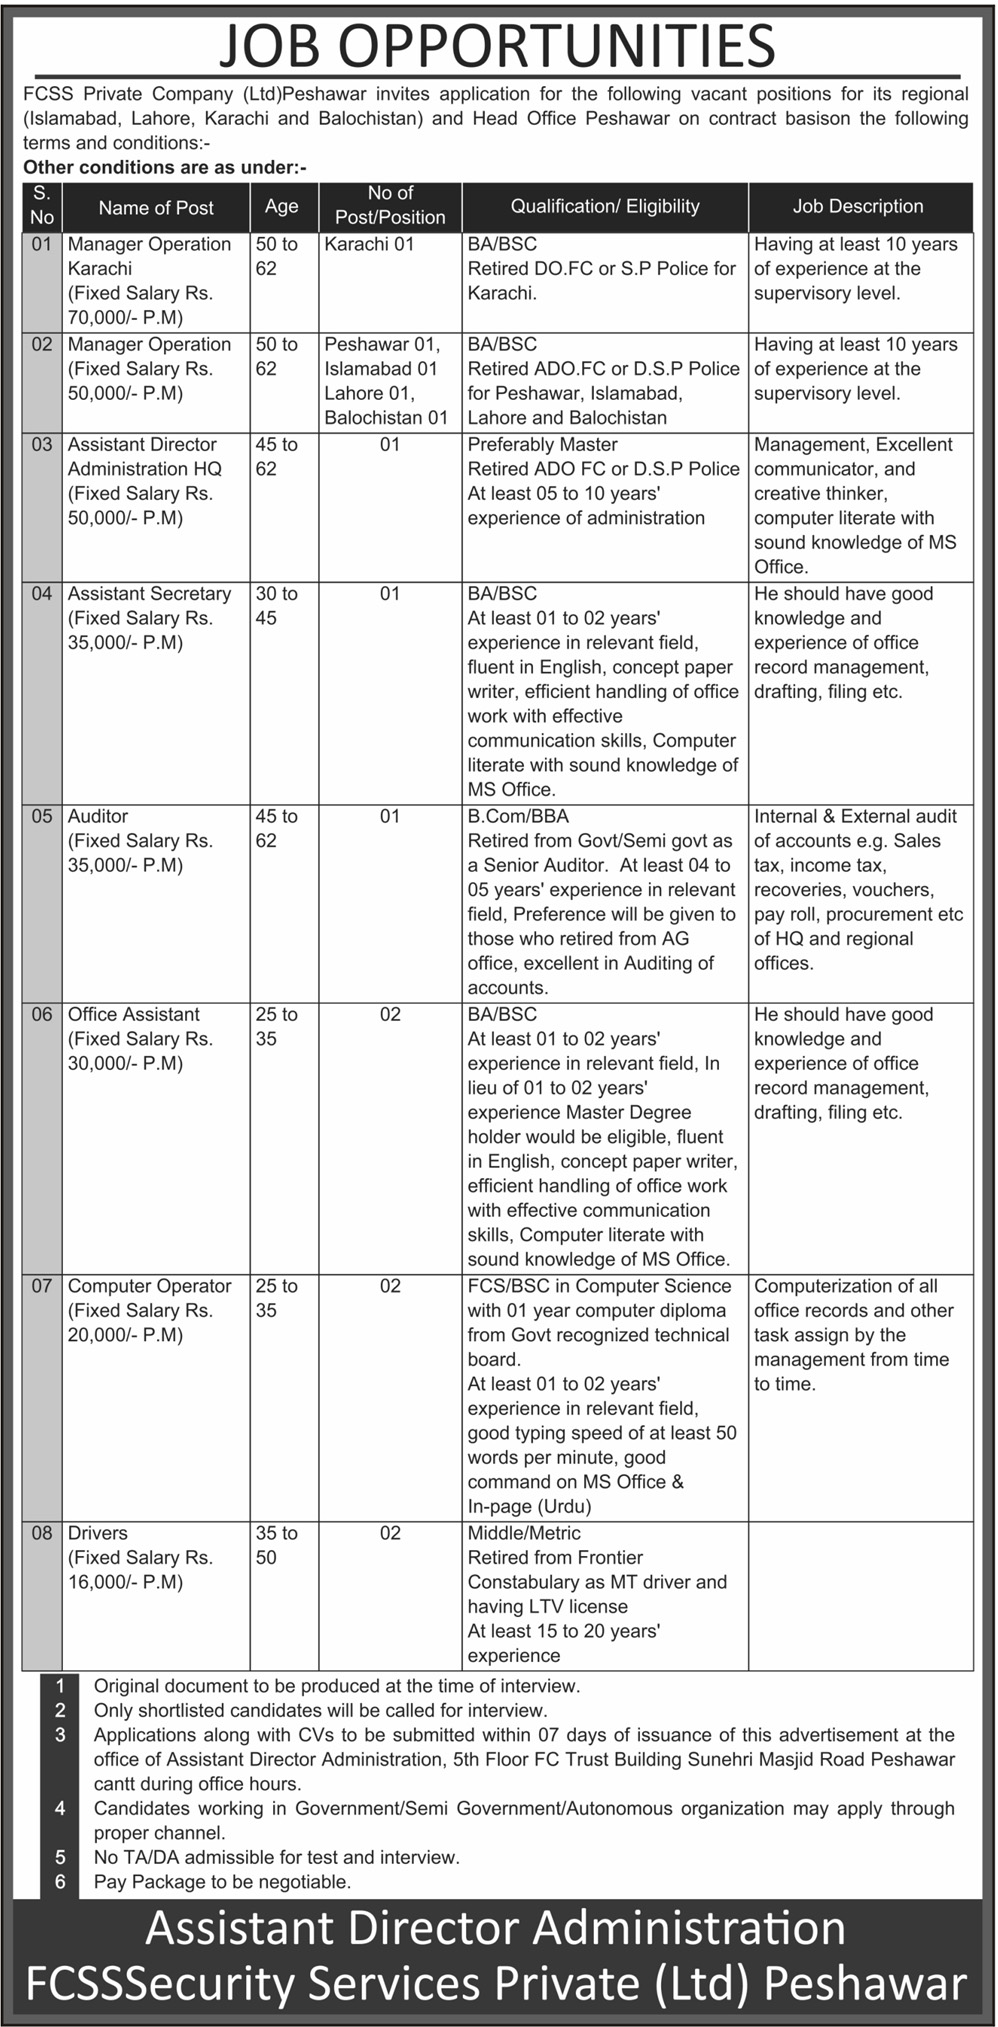 FCSS Private Company Peshawar jobs 2021 Application form Download Online